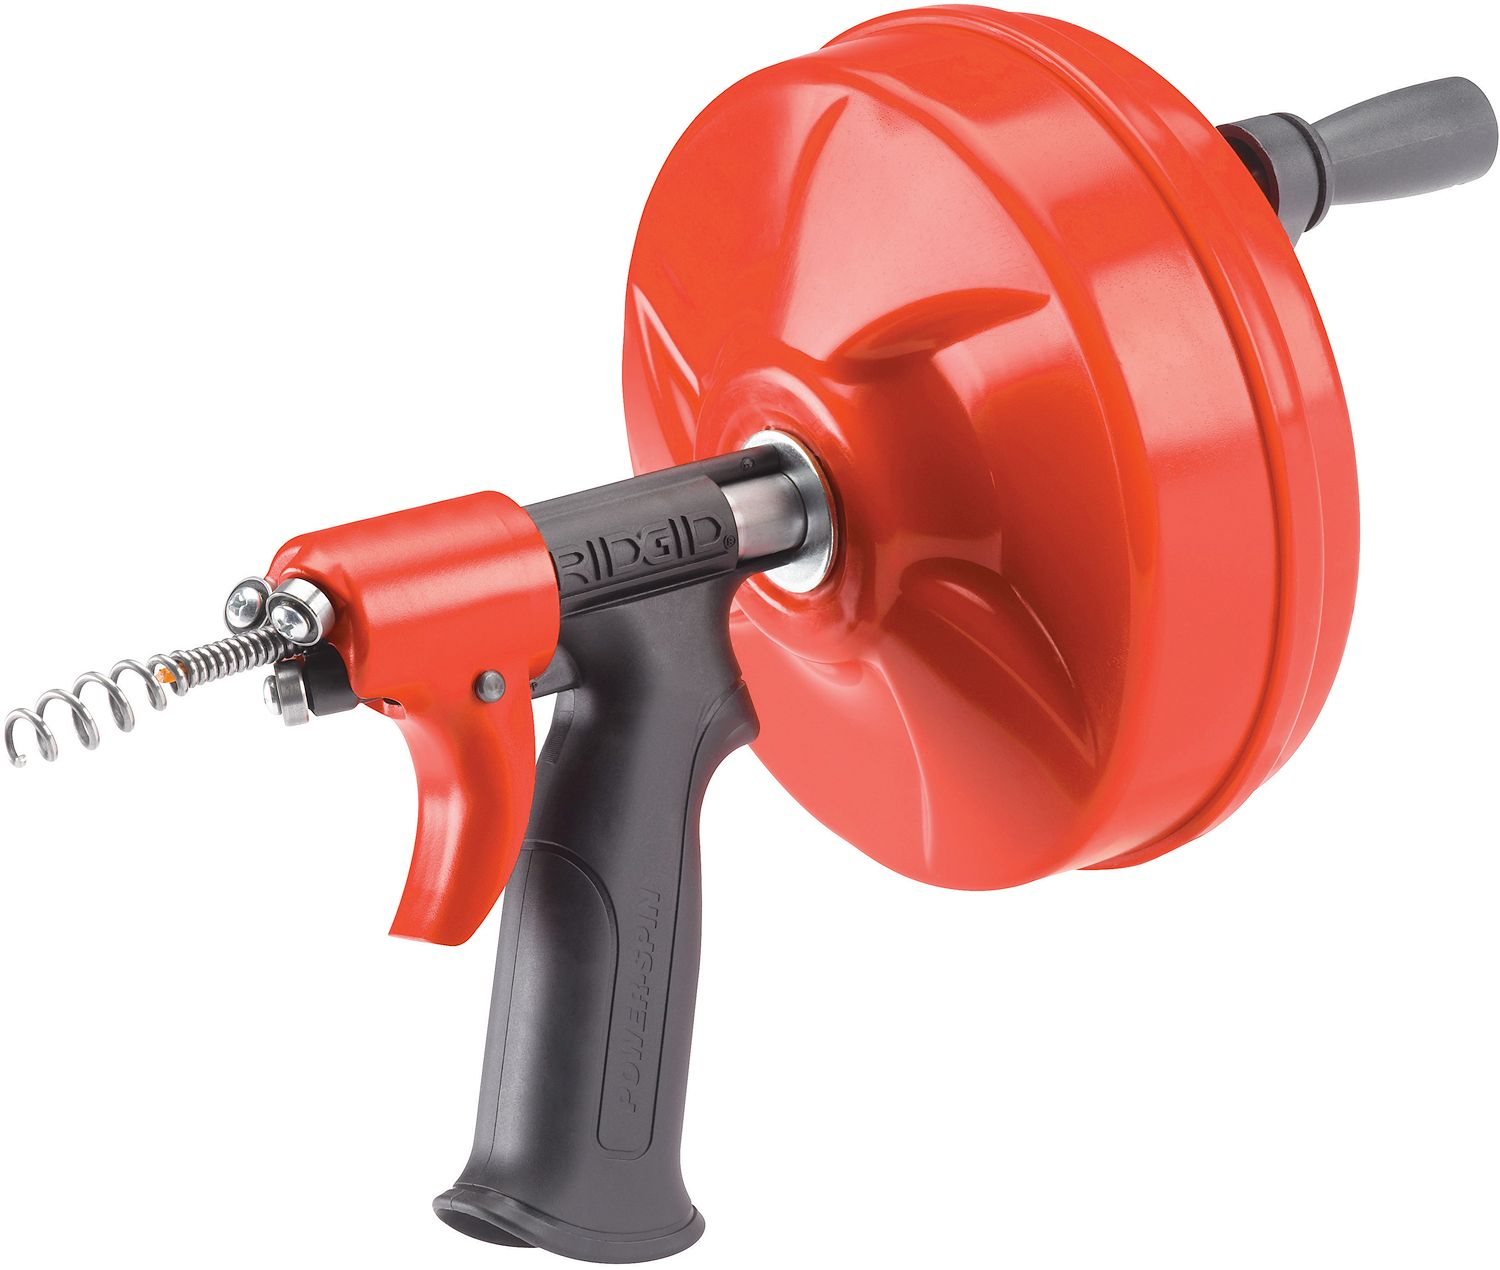 ONTSTOPPINGSMACHINE POWER SPIN RIDGID